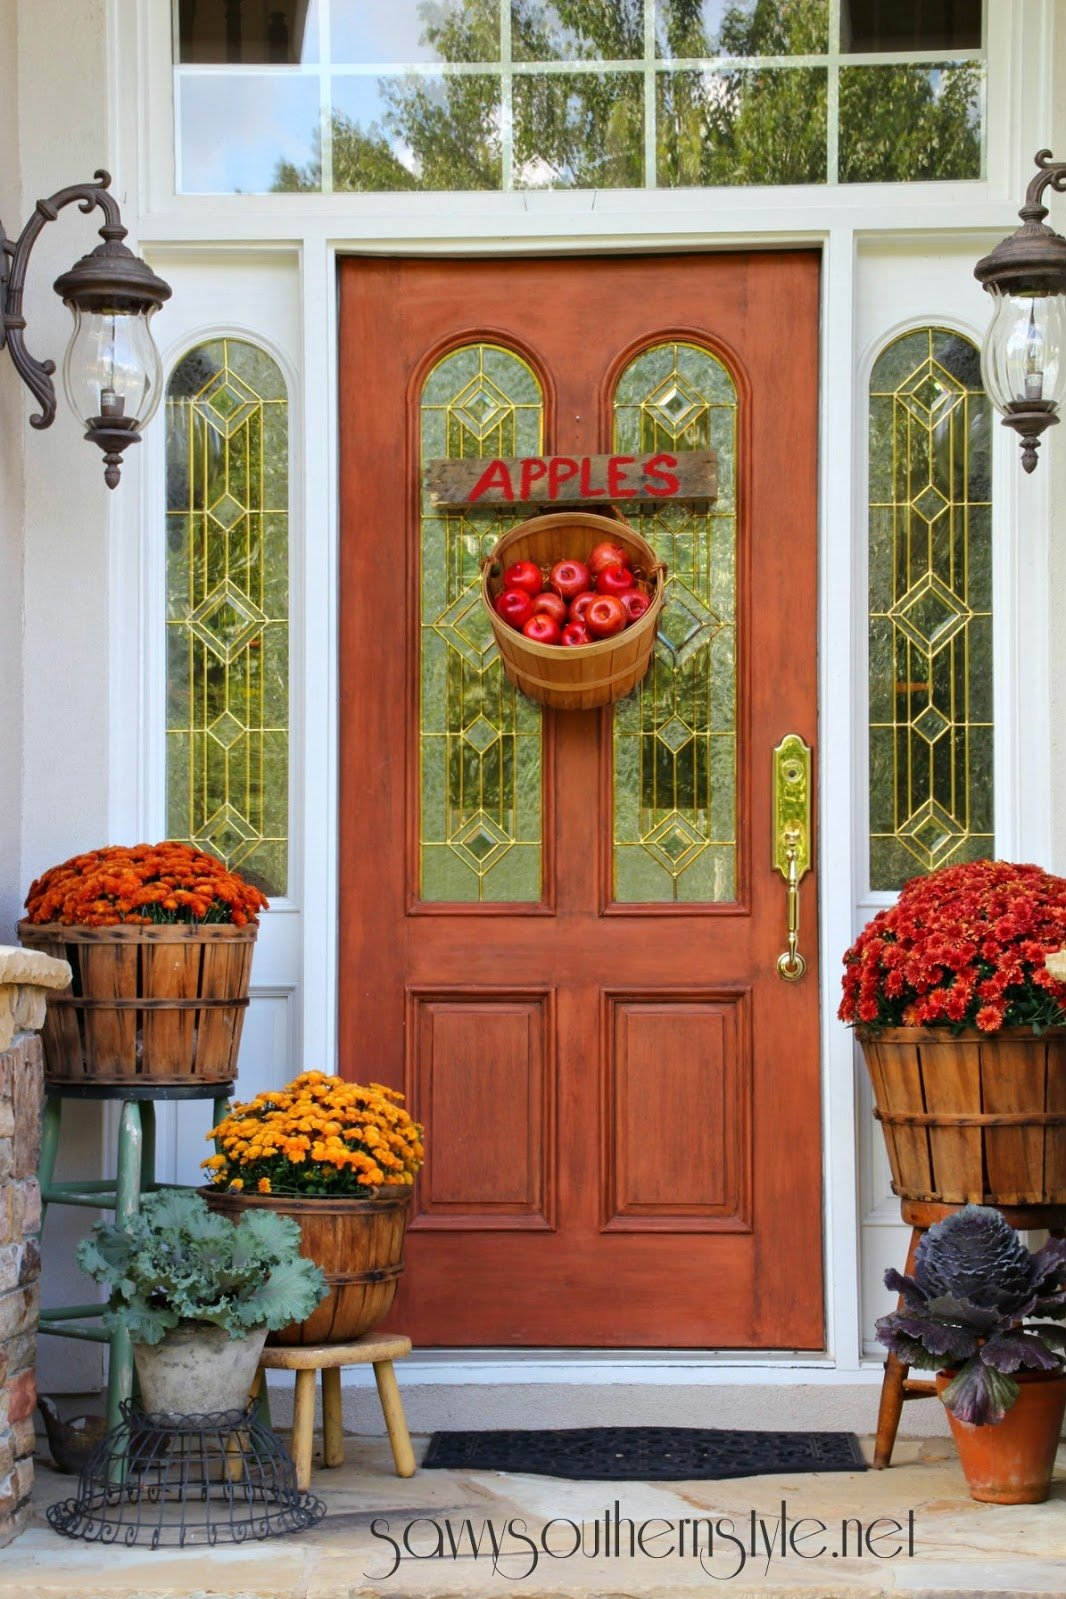 10 Lovely Front Door Fall Decorating Ideas 37 fall porch decorating ideas ways to decorate your porch for fall 4